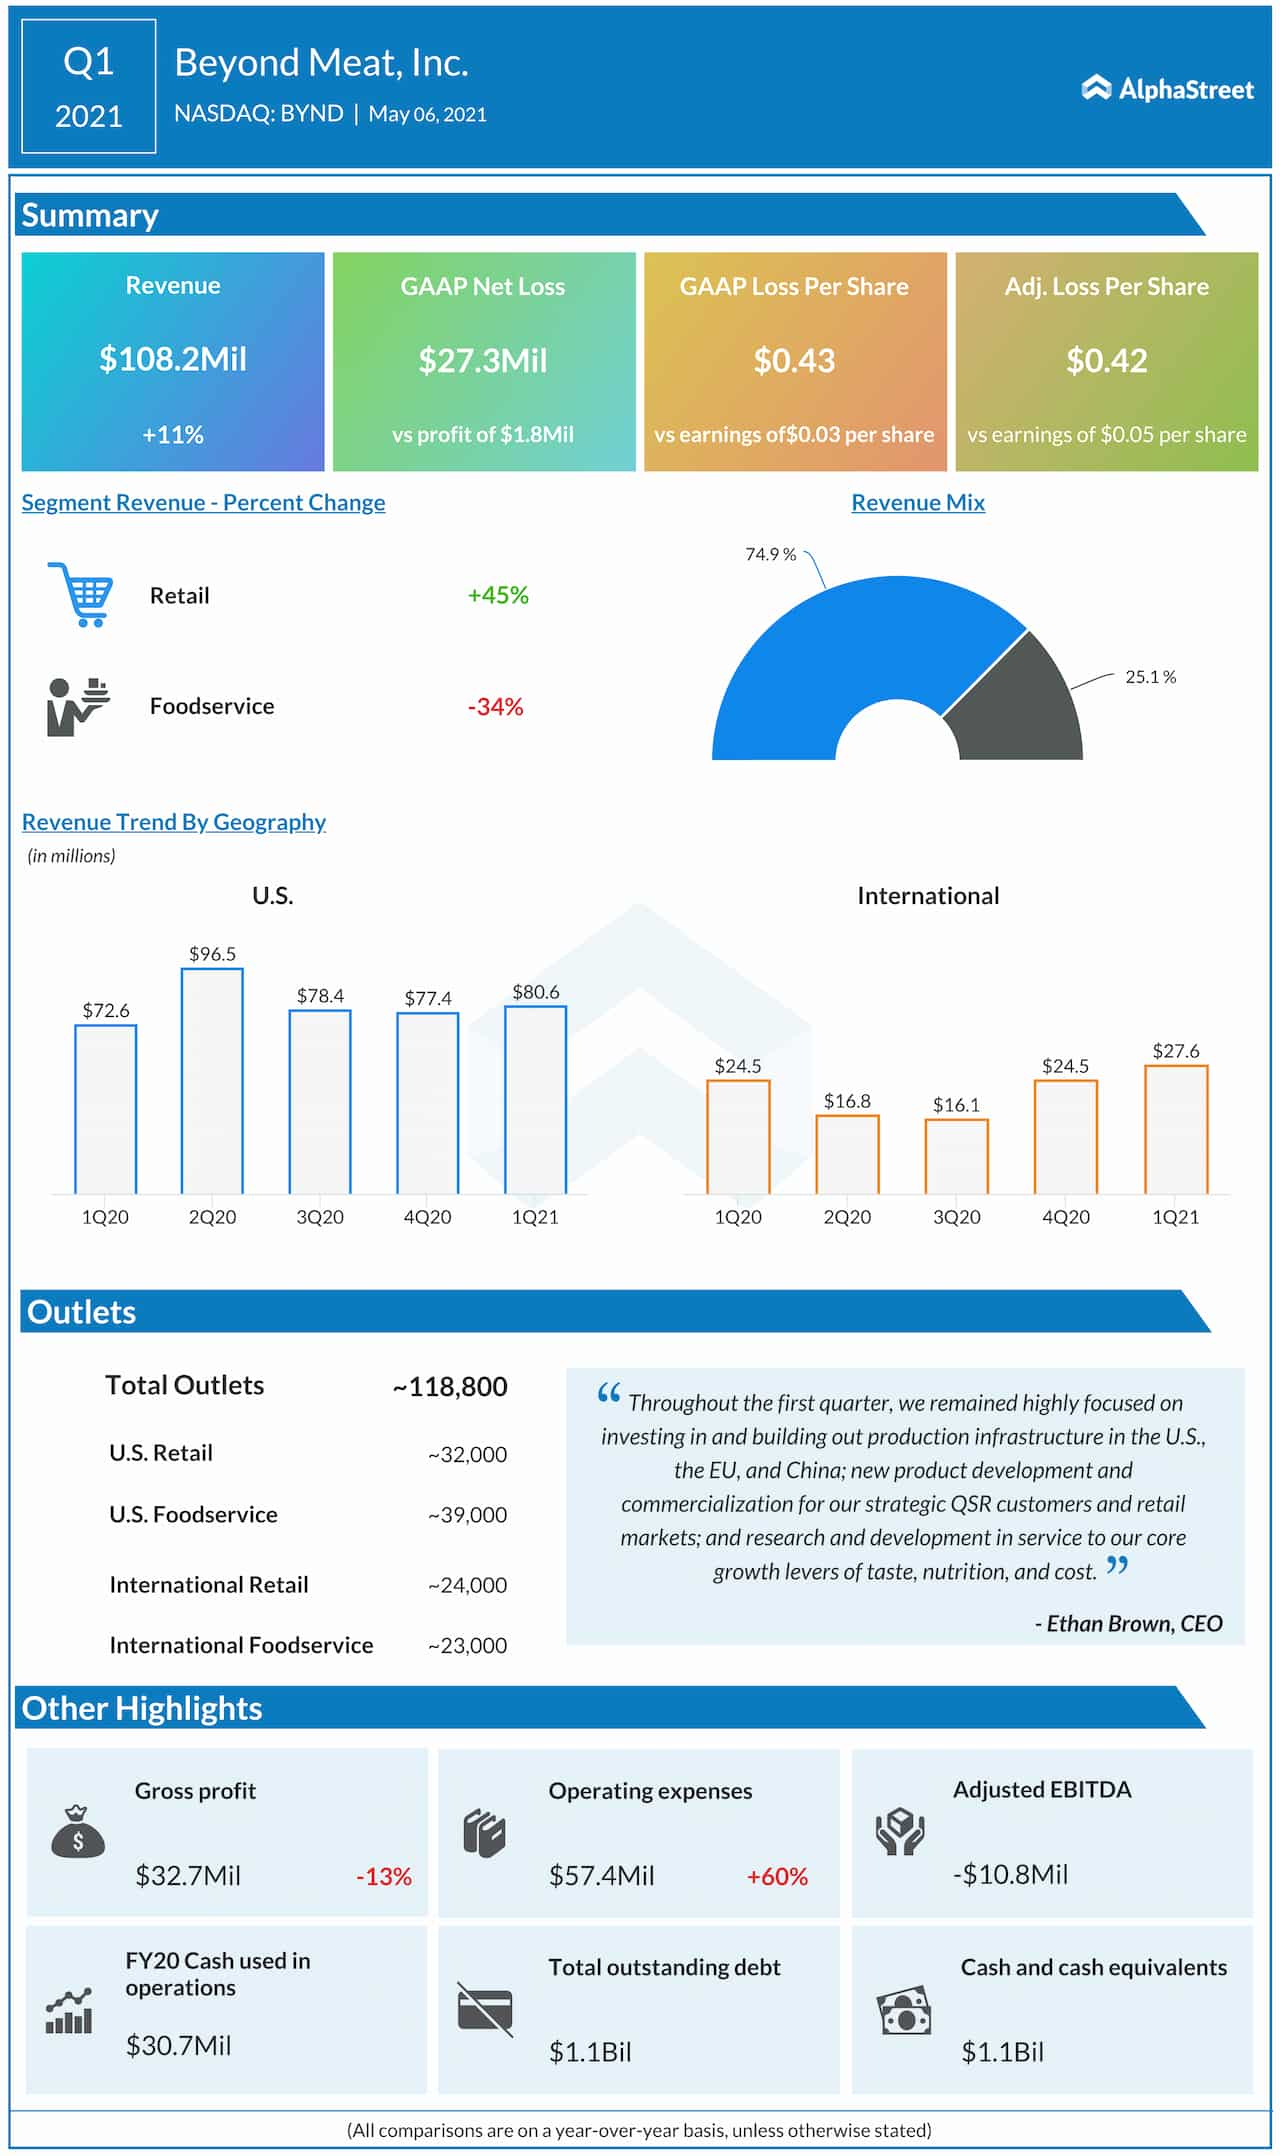 Beyond Meat Q1 2021 earnings infographic